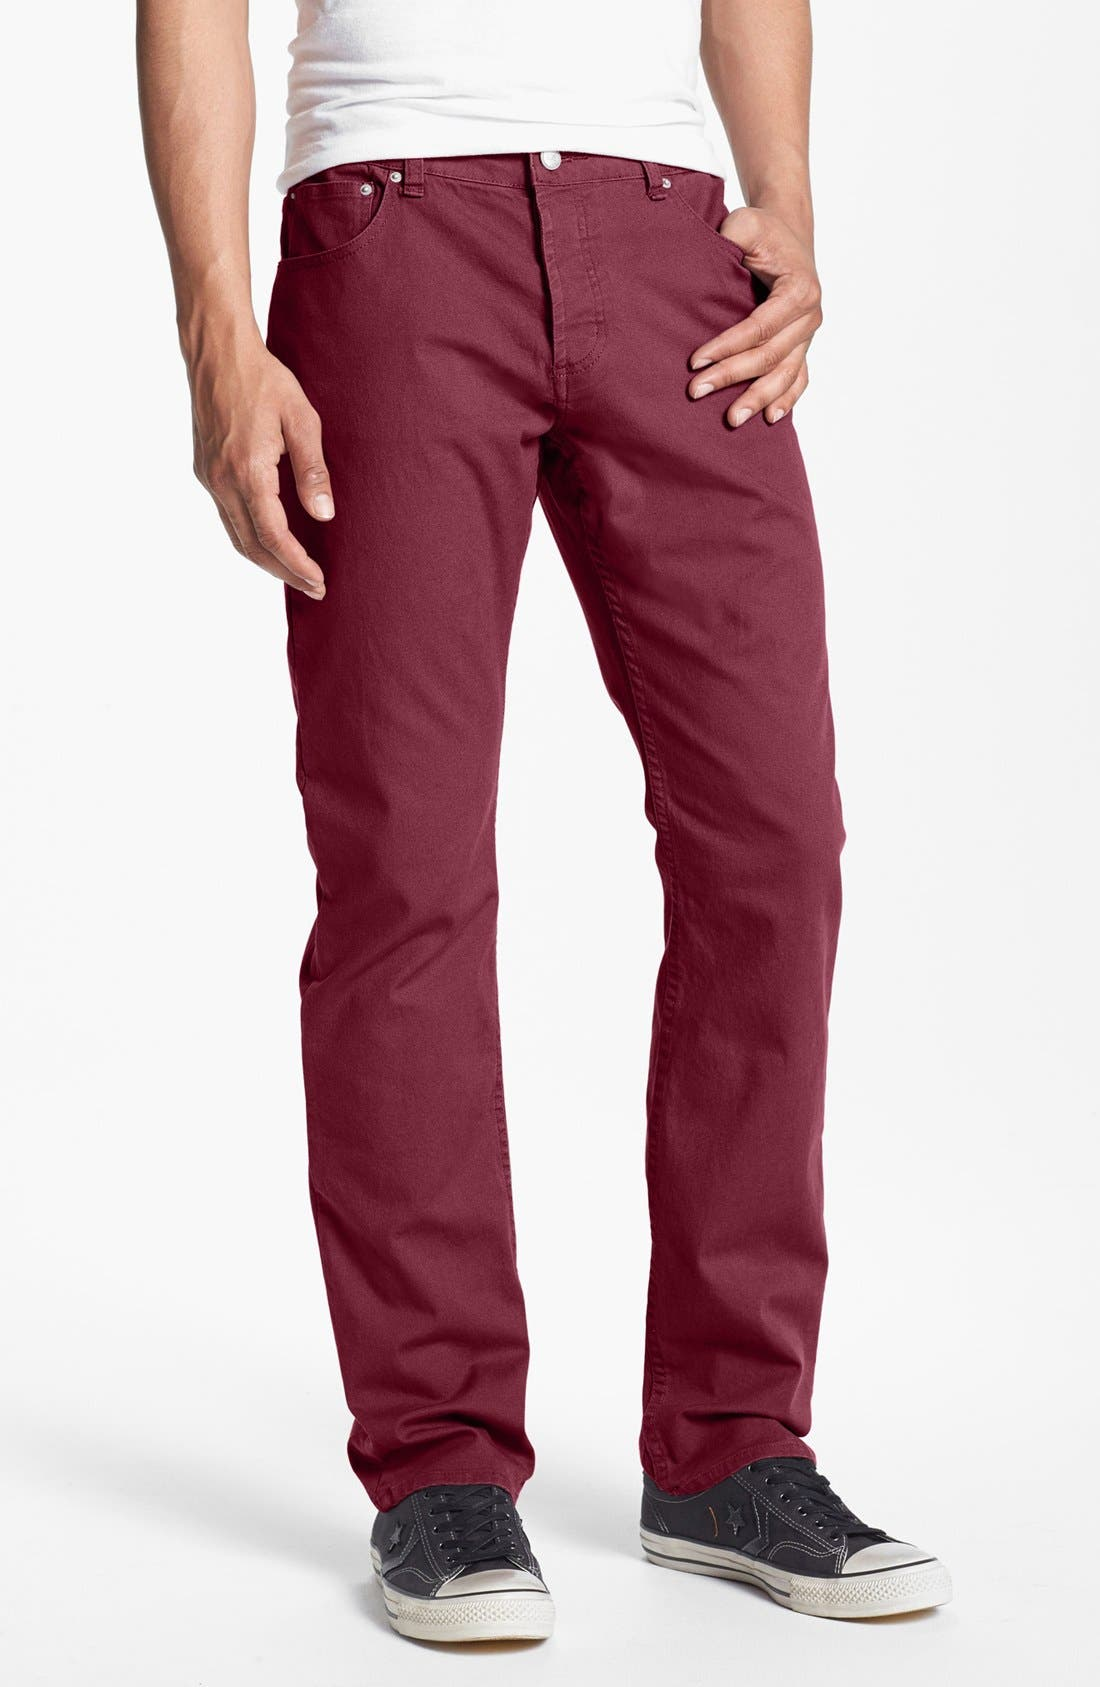 Main Image - Obey 'New Threat' Slim Fit Canvas Pants